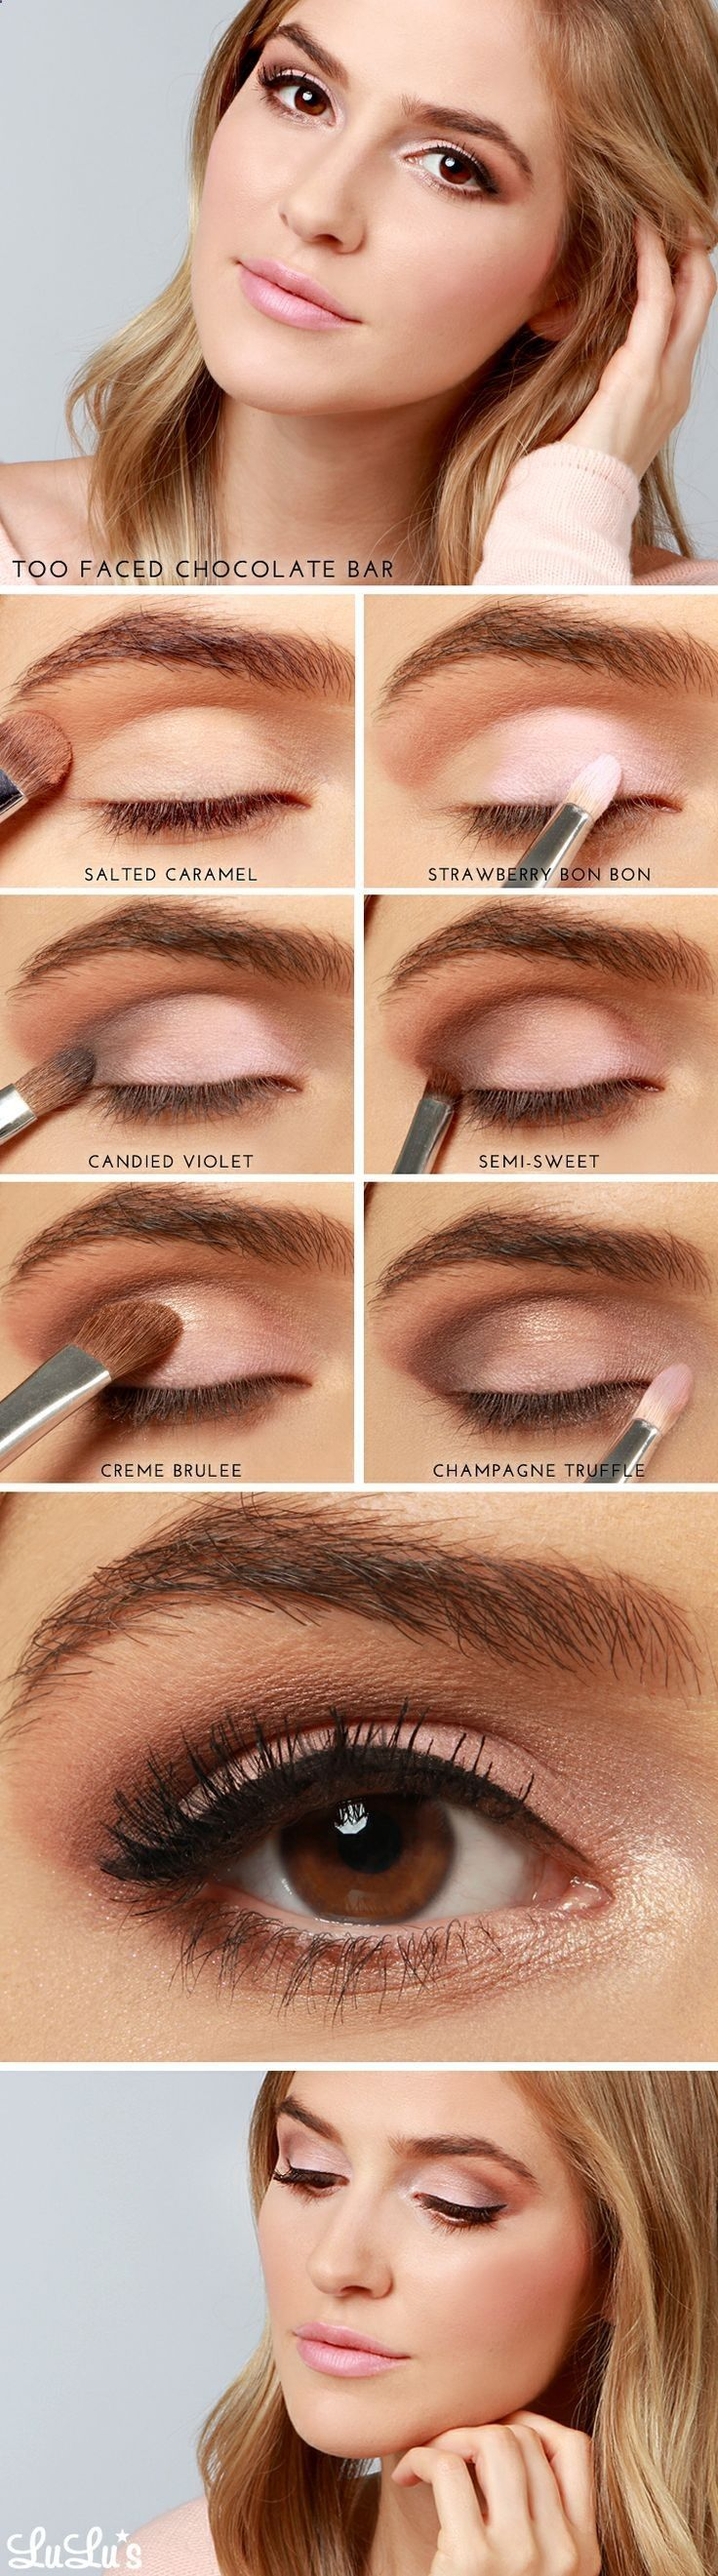 Chocolate Bar Eye Shadow / eyes makeup tutorials |... #coupon code nicesup123 gets 25% off at  http://Provestra.com http://Skinception.com